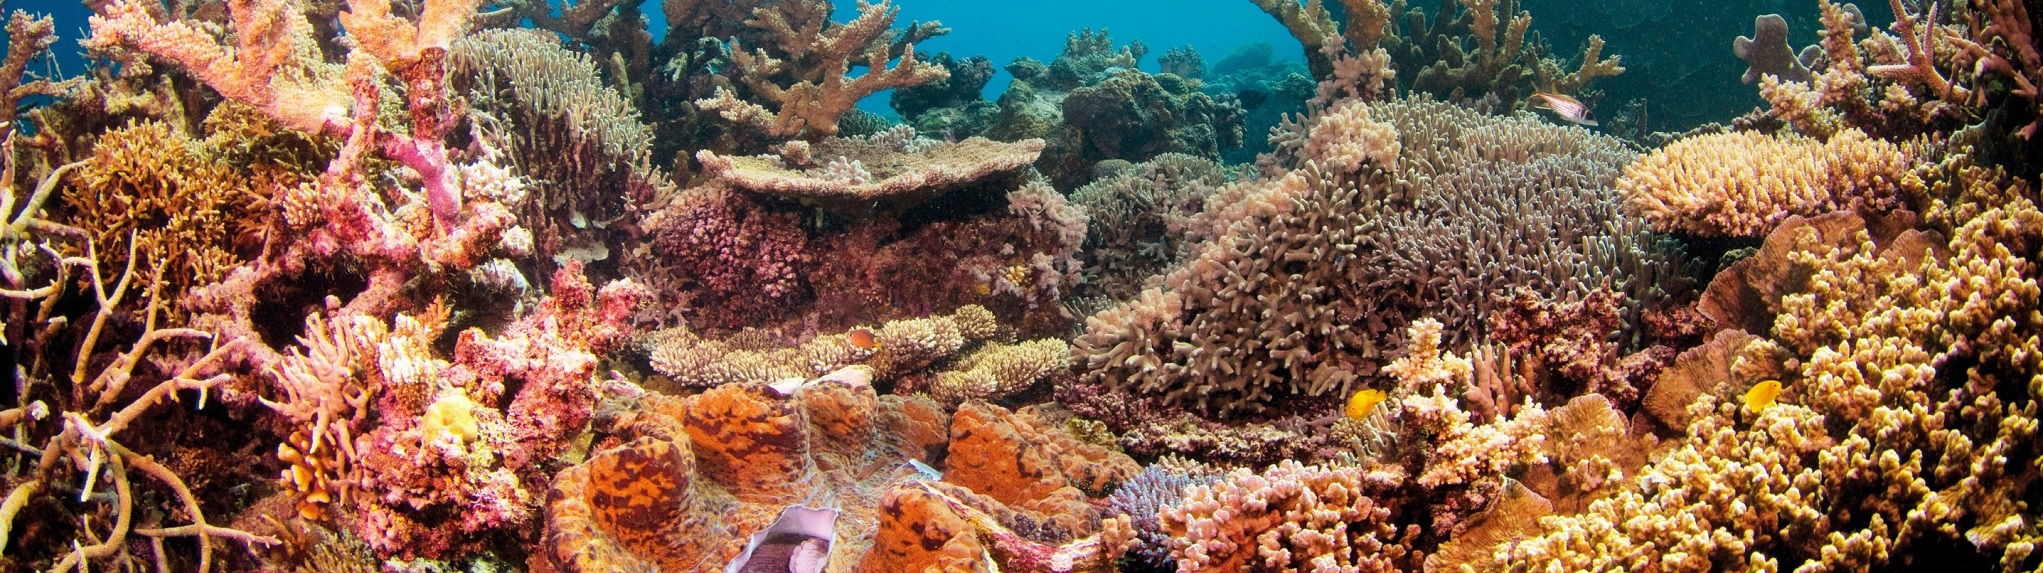 Where is the best place to visit on the Great Barrier Reef?